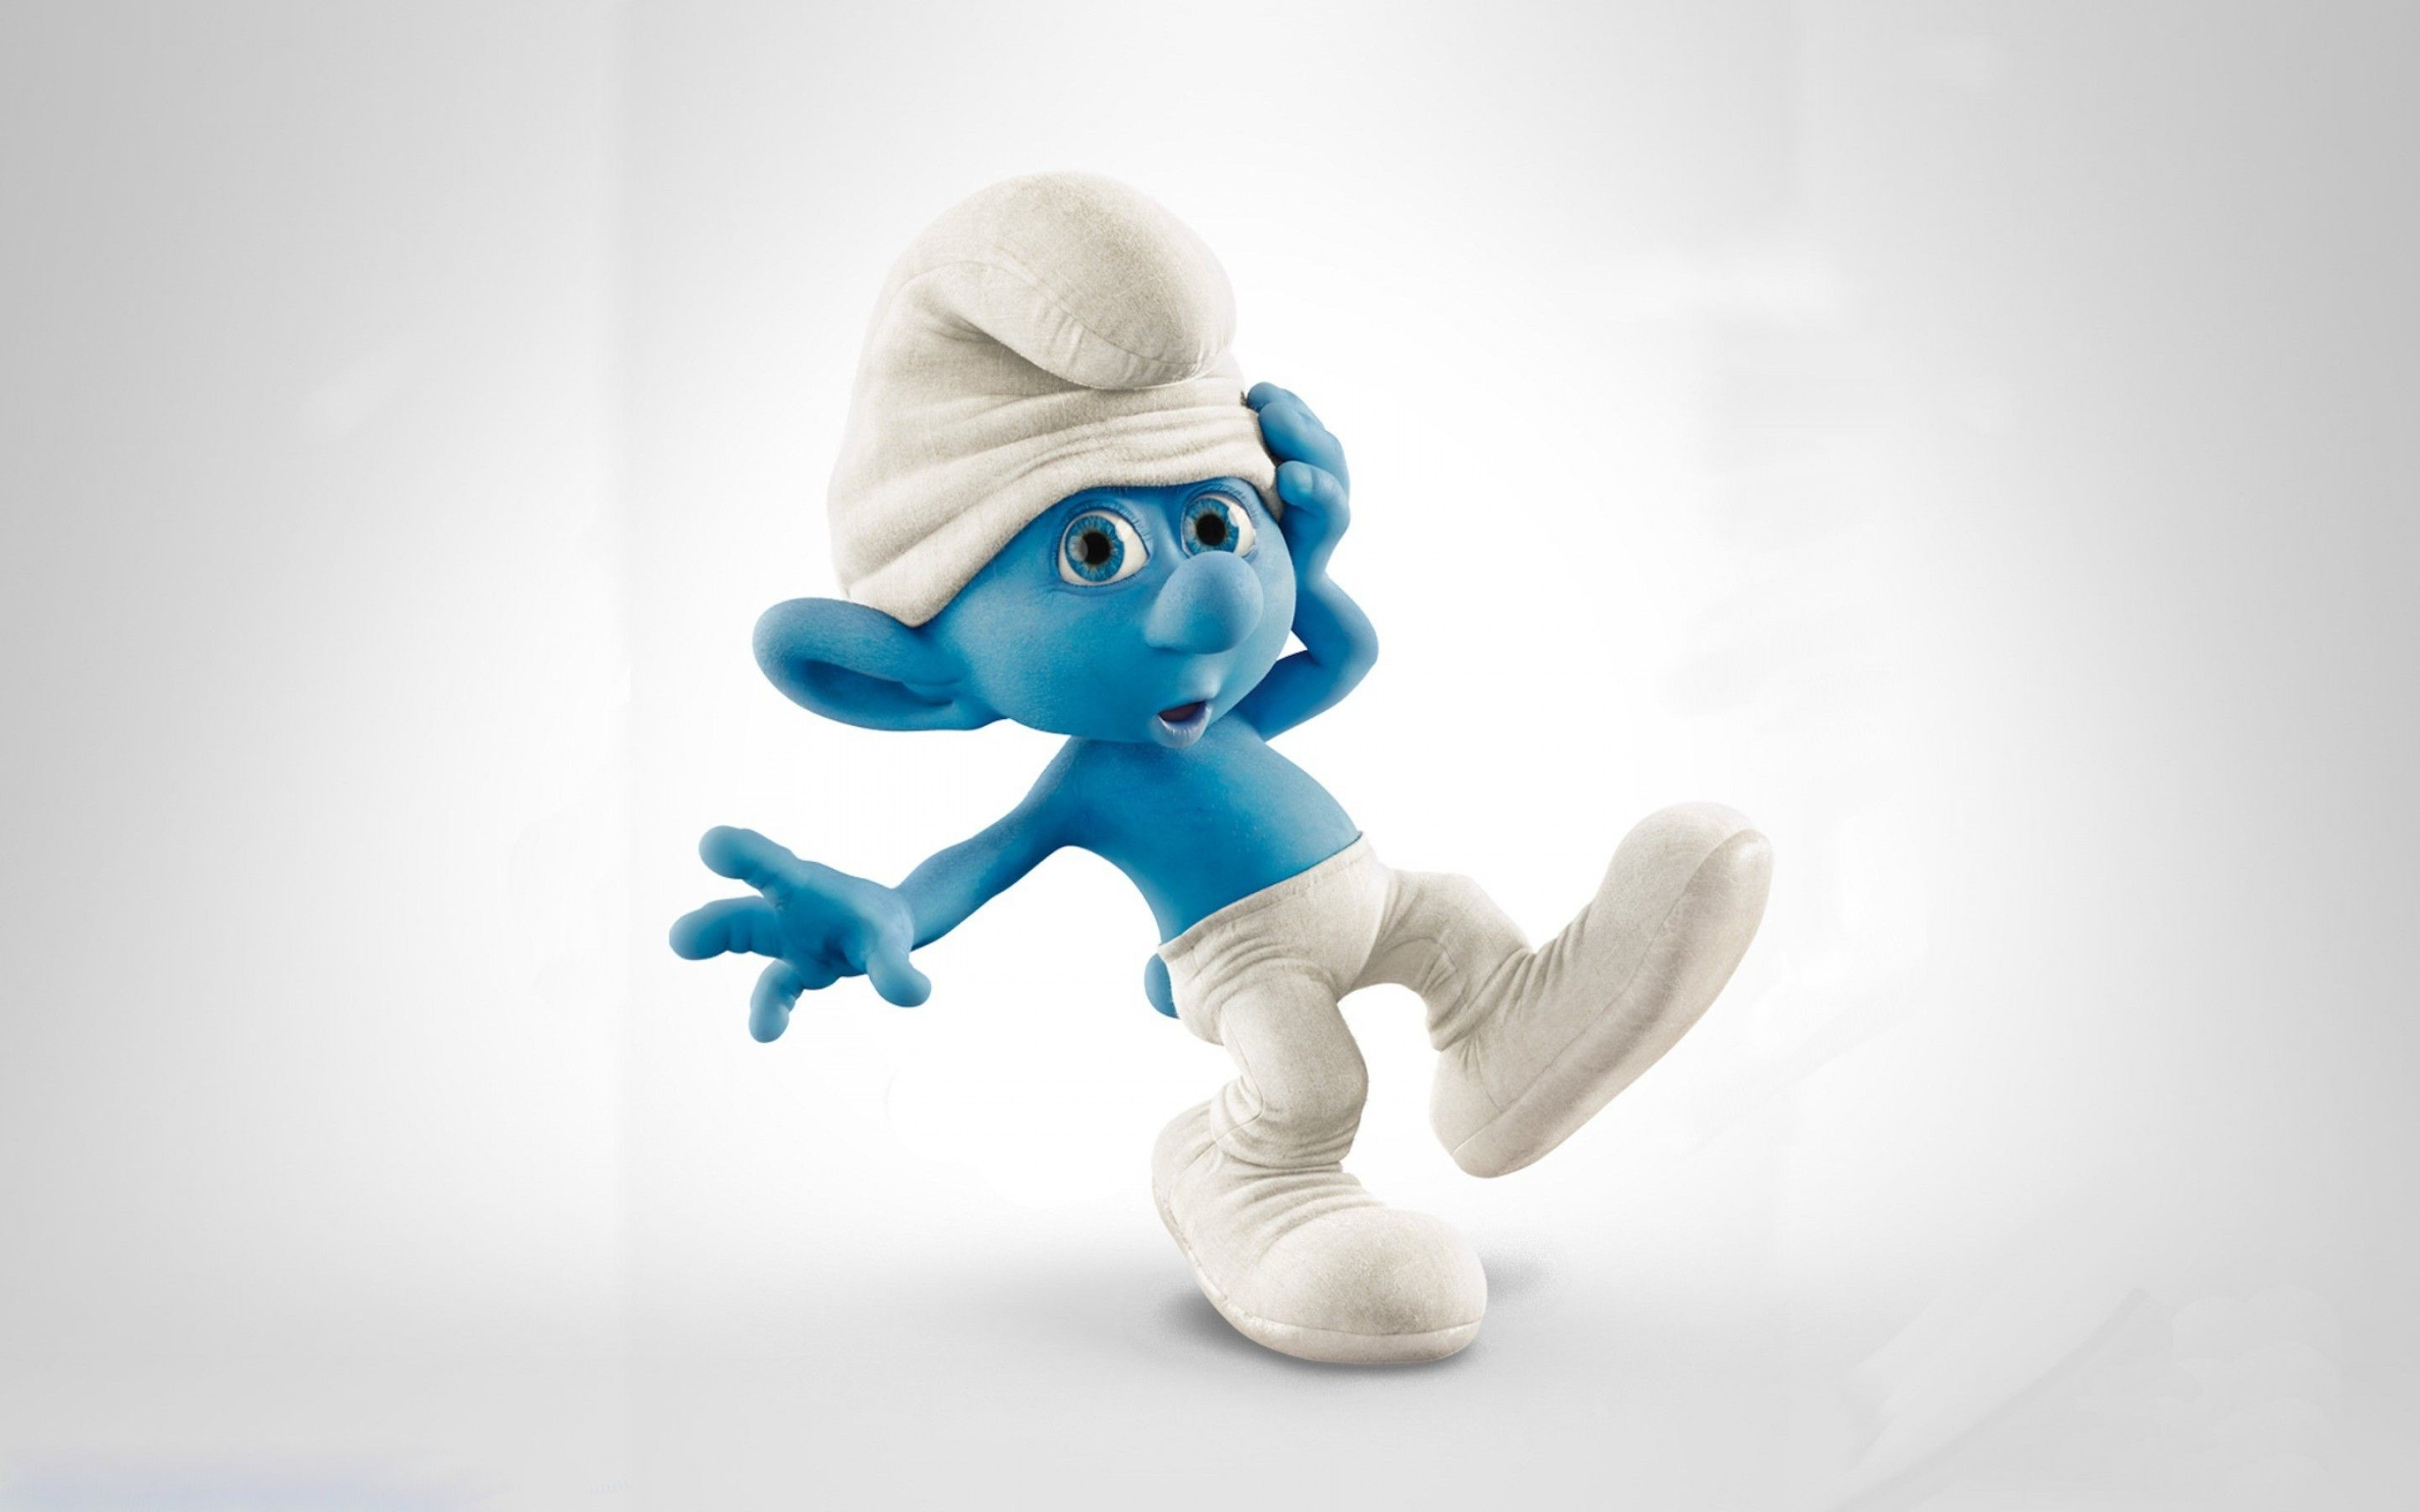 3d Movie Characters Wallpaper 1080p With Wallpaper High Resolution 2880x1800 Px 269 43 Kb Cartoon Wallpaper Hd Smurfs Smurfs Movie